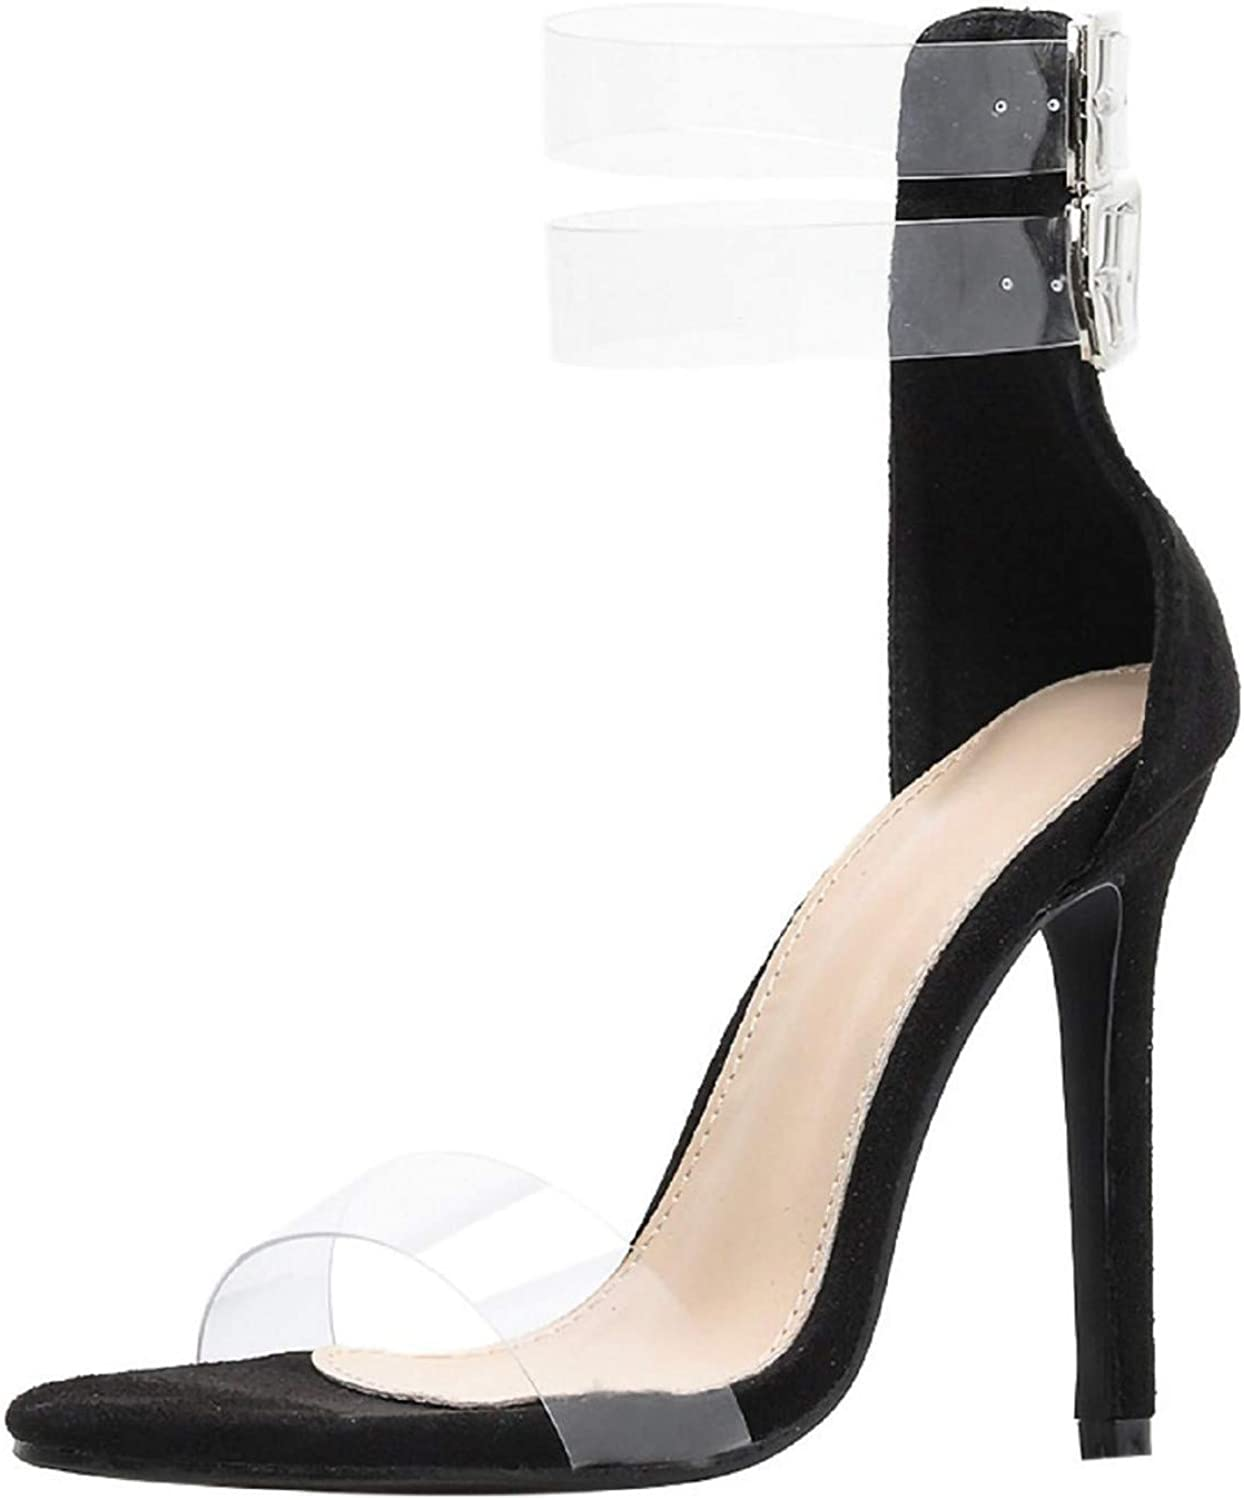 WuyiMC Wome shoes Women's Transparent Open Toe Ankle Buckle Strappy High Heel Dress Sandals